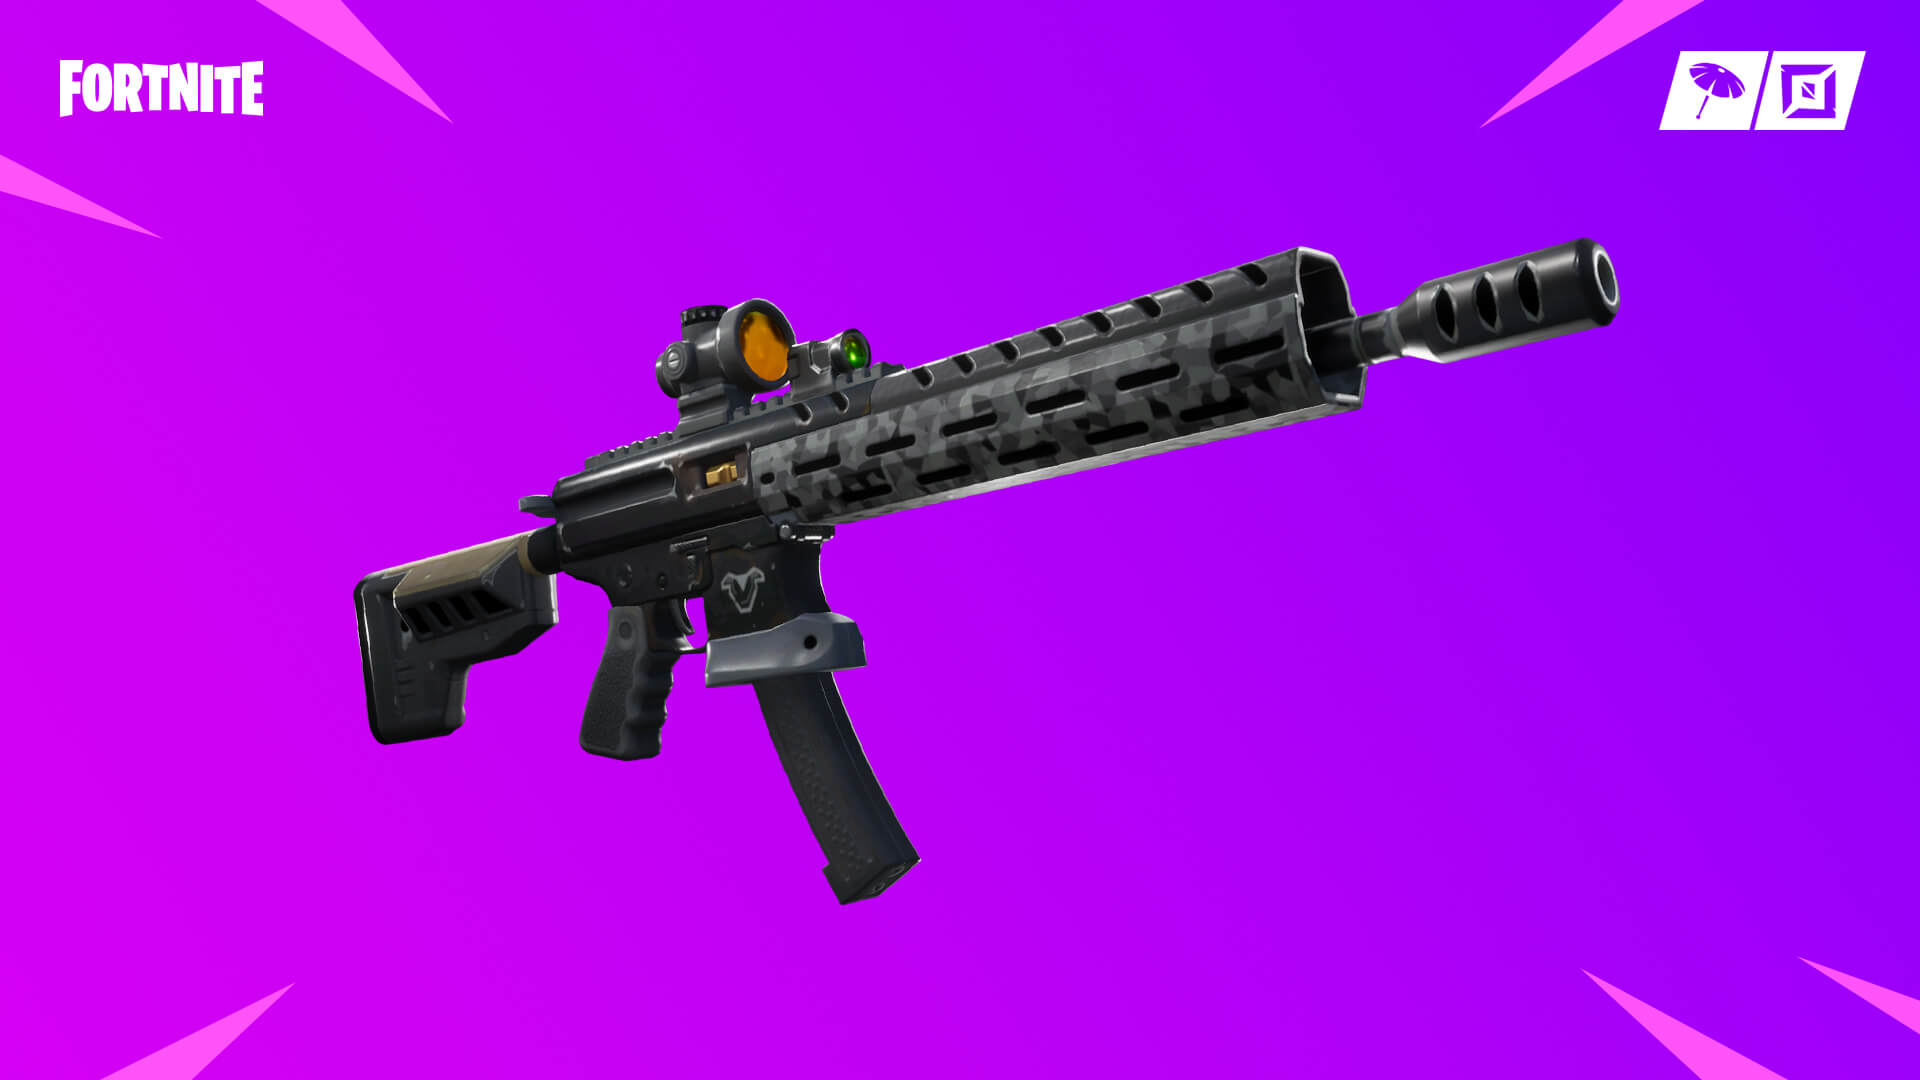 Fortnite tactical AR